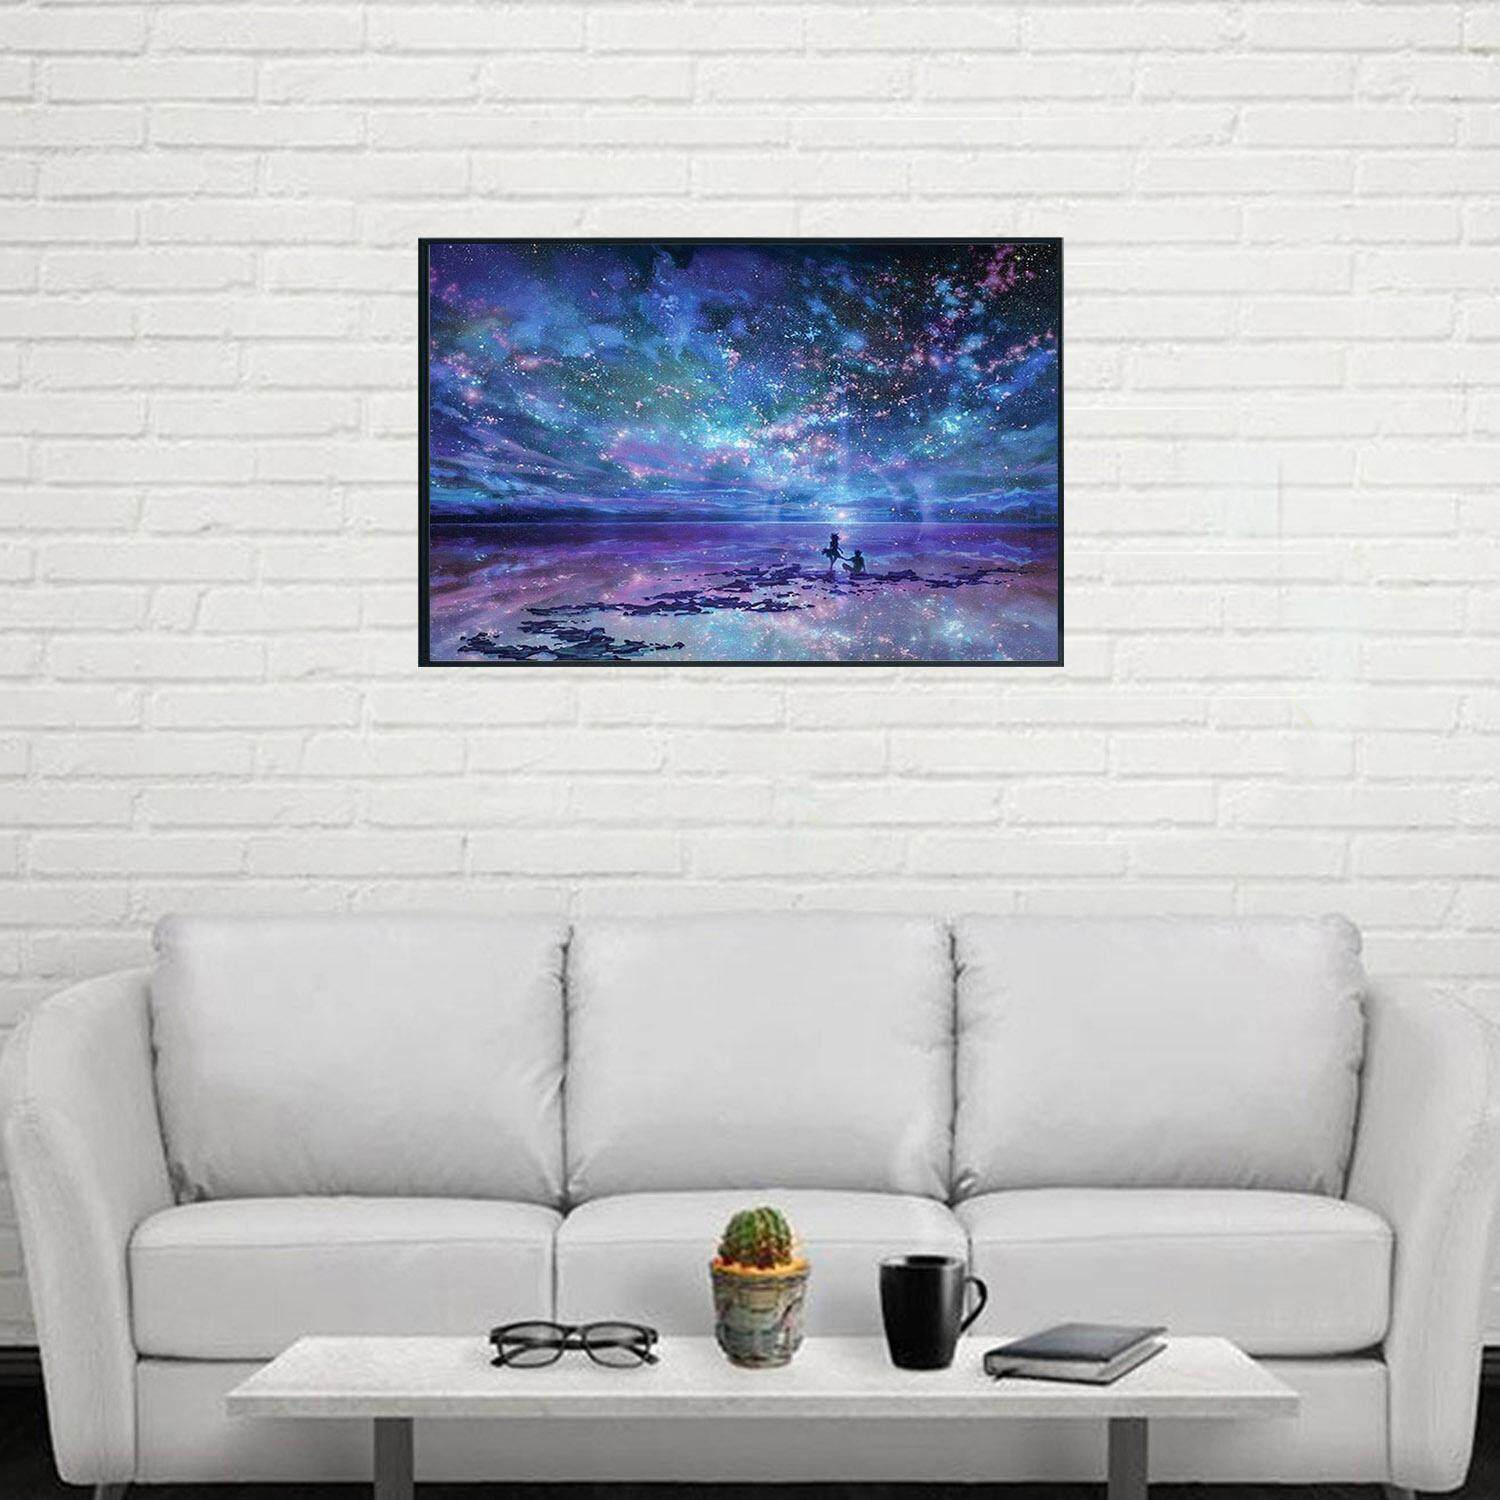 Hình ảnh 5D DIY Night Sky Pattern Diamond Rhinestone Painting Part Embroidery Cross Stitch Picture for Home Wall Decor DIY Christmas Birthday Gift - intl